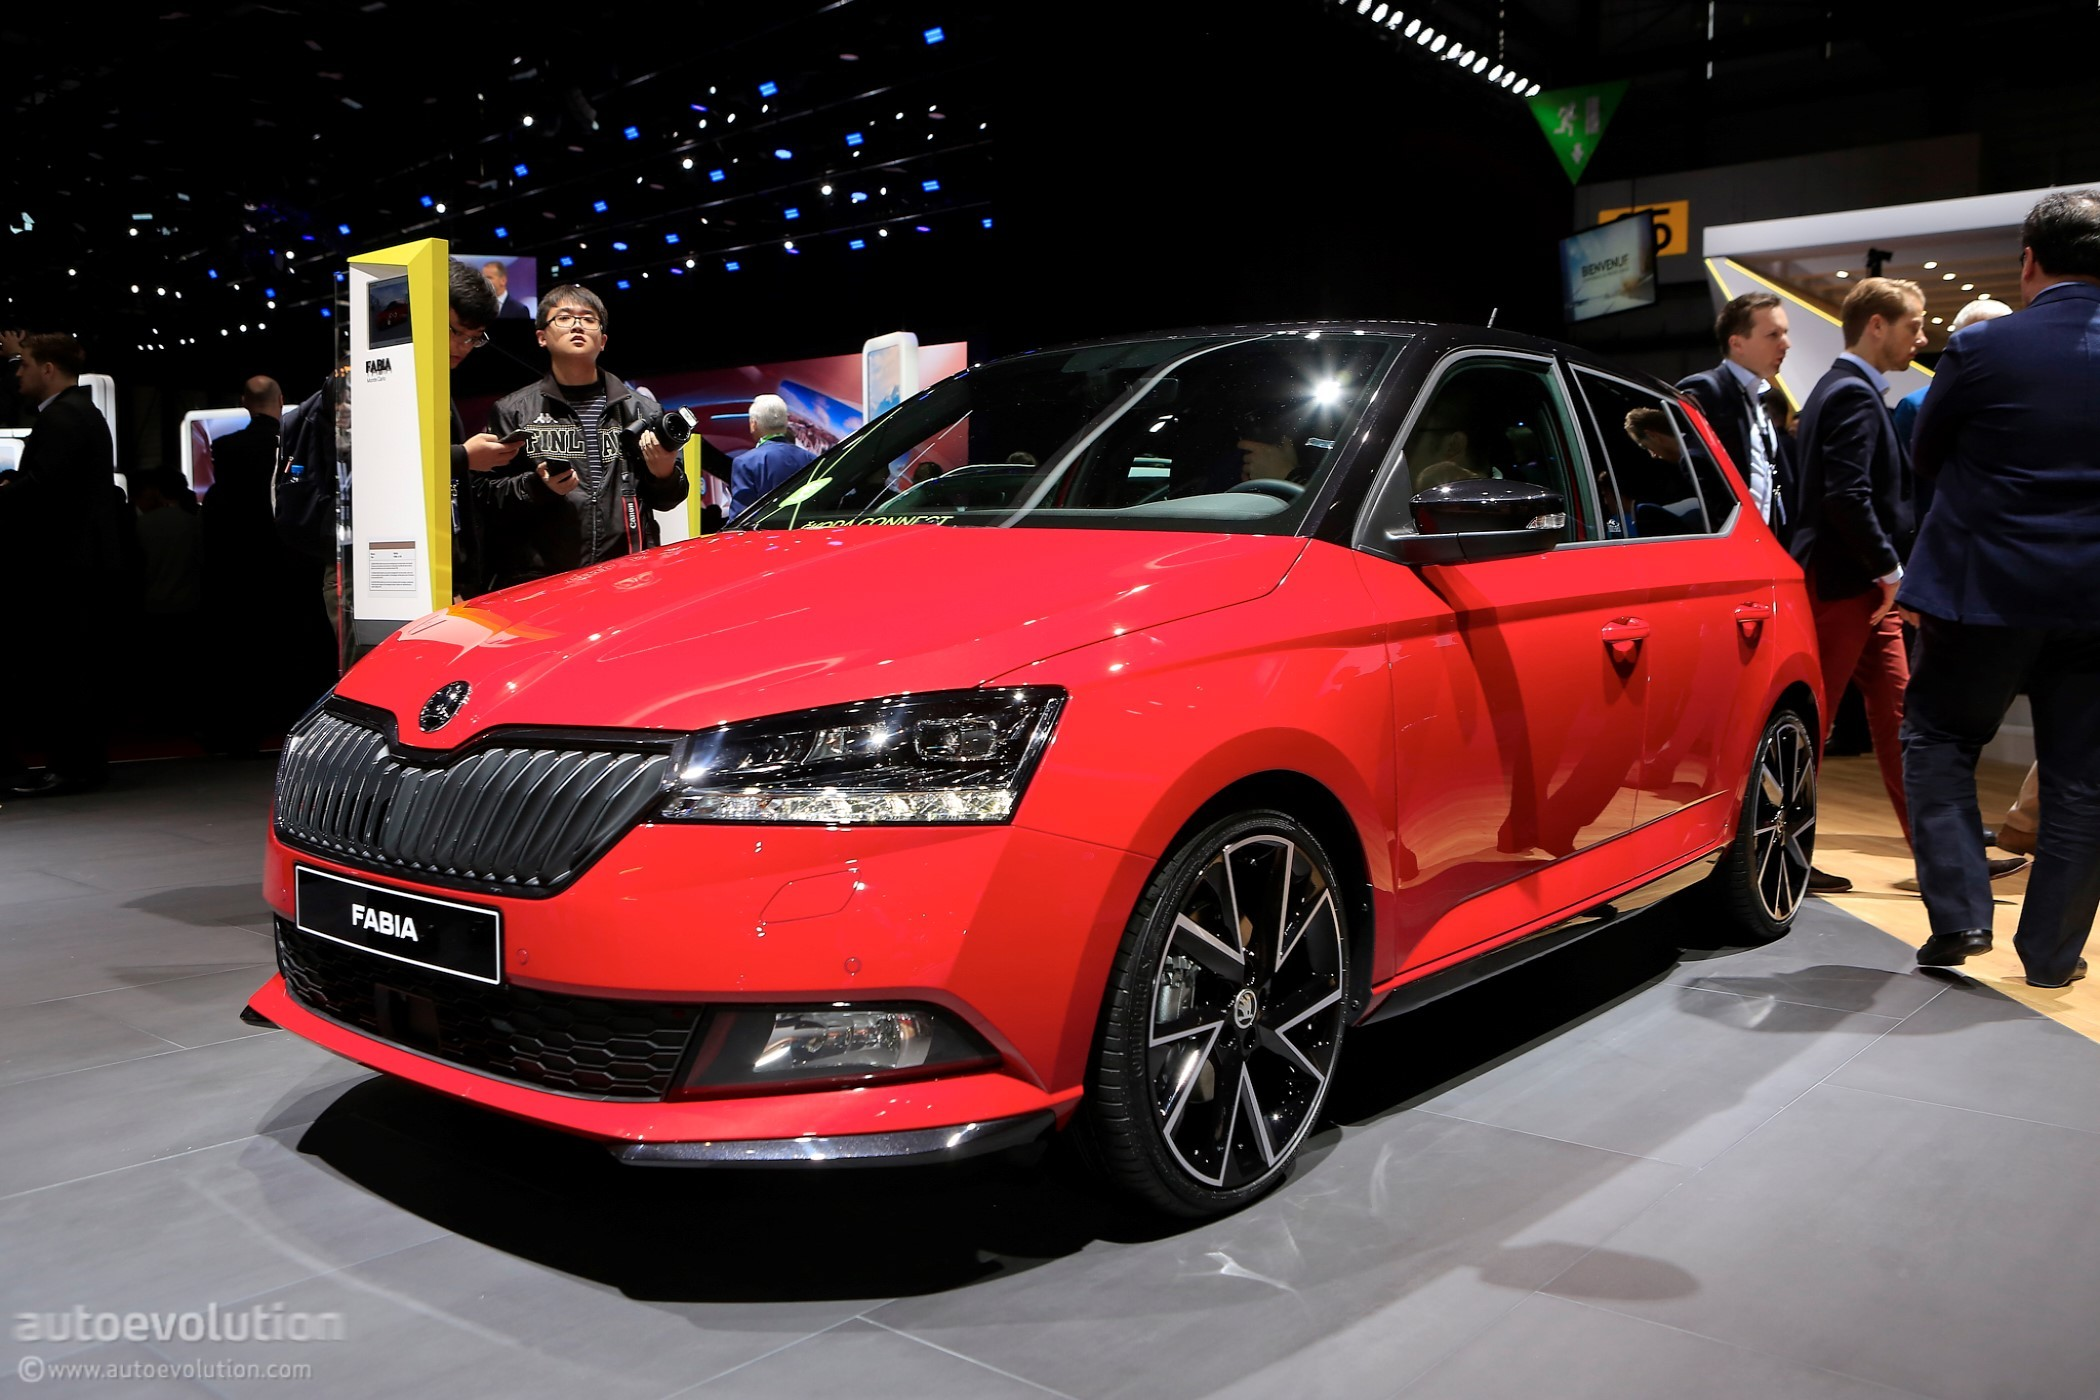 2018 skoda fabia rolls out mid cycle refresh at geneva motor show autoevolution. Black Bedroom Furniture Sets. Home Design Ideas